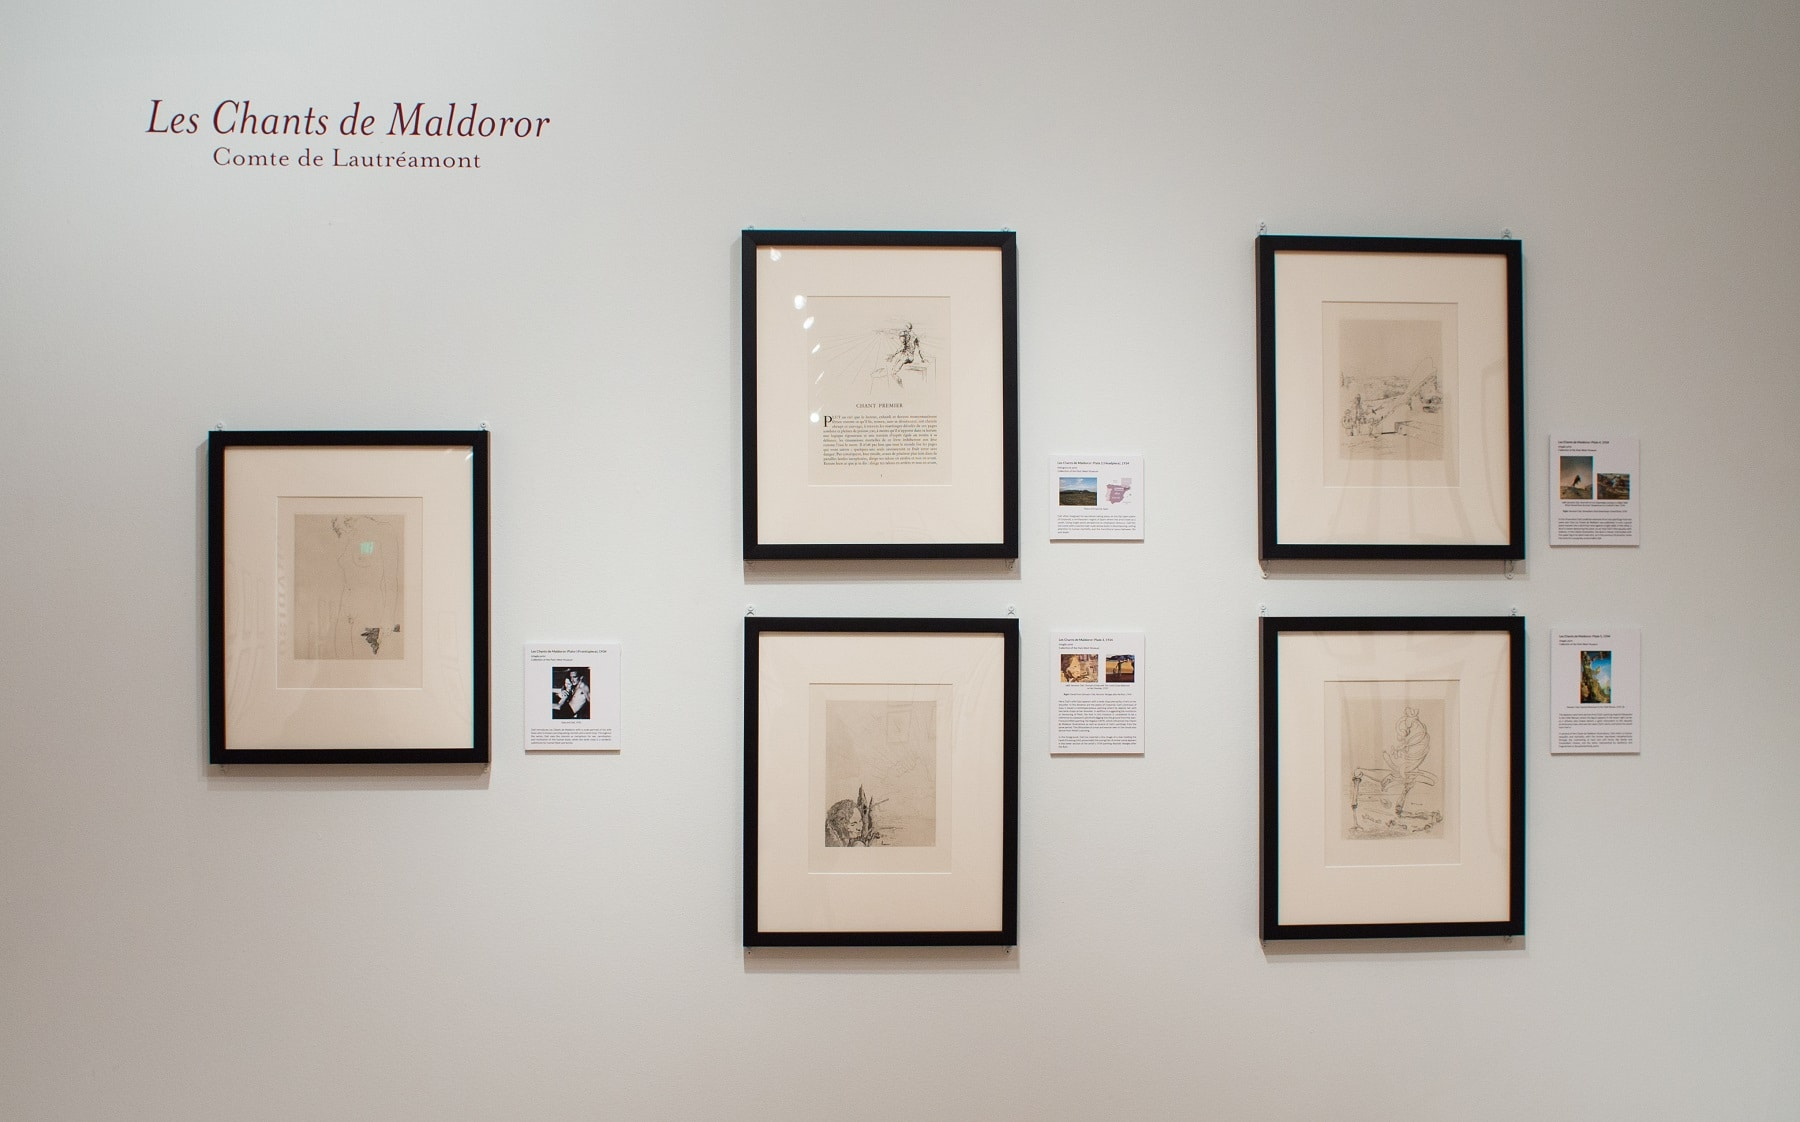 """The """"Les Chants de Maldoror"""" gallery from the """"Salvador Dalí's Stairway to Heaven"""" exhibition at Louisiana's Hilliard University Art Museum."""